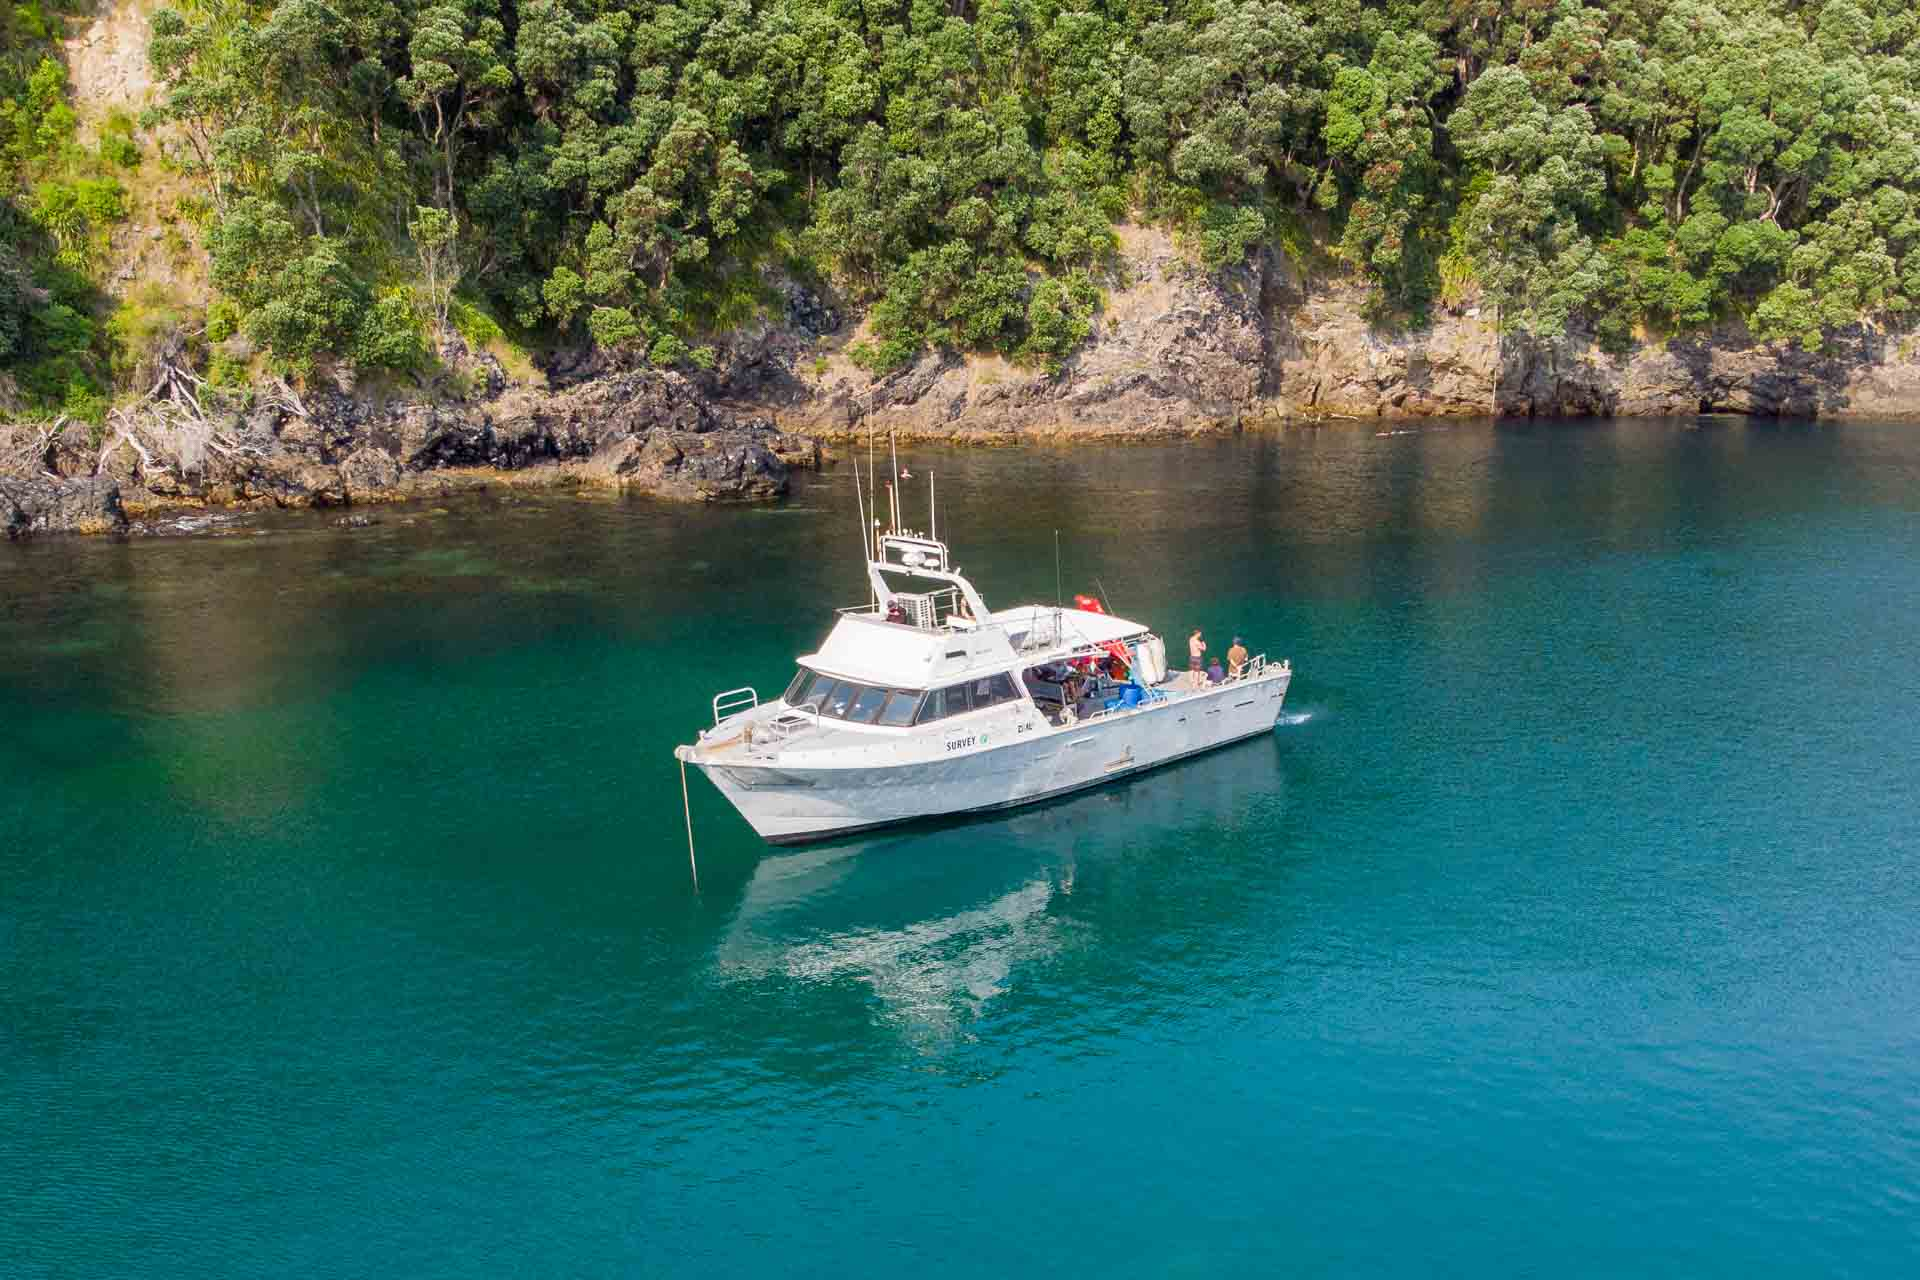 Pacific7 18M Ocean Eagle Work boat Hire New Zealand